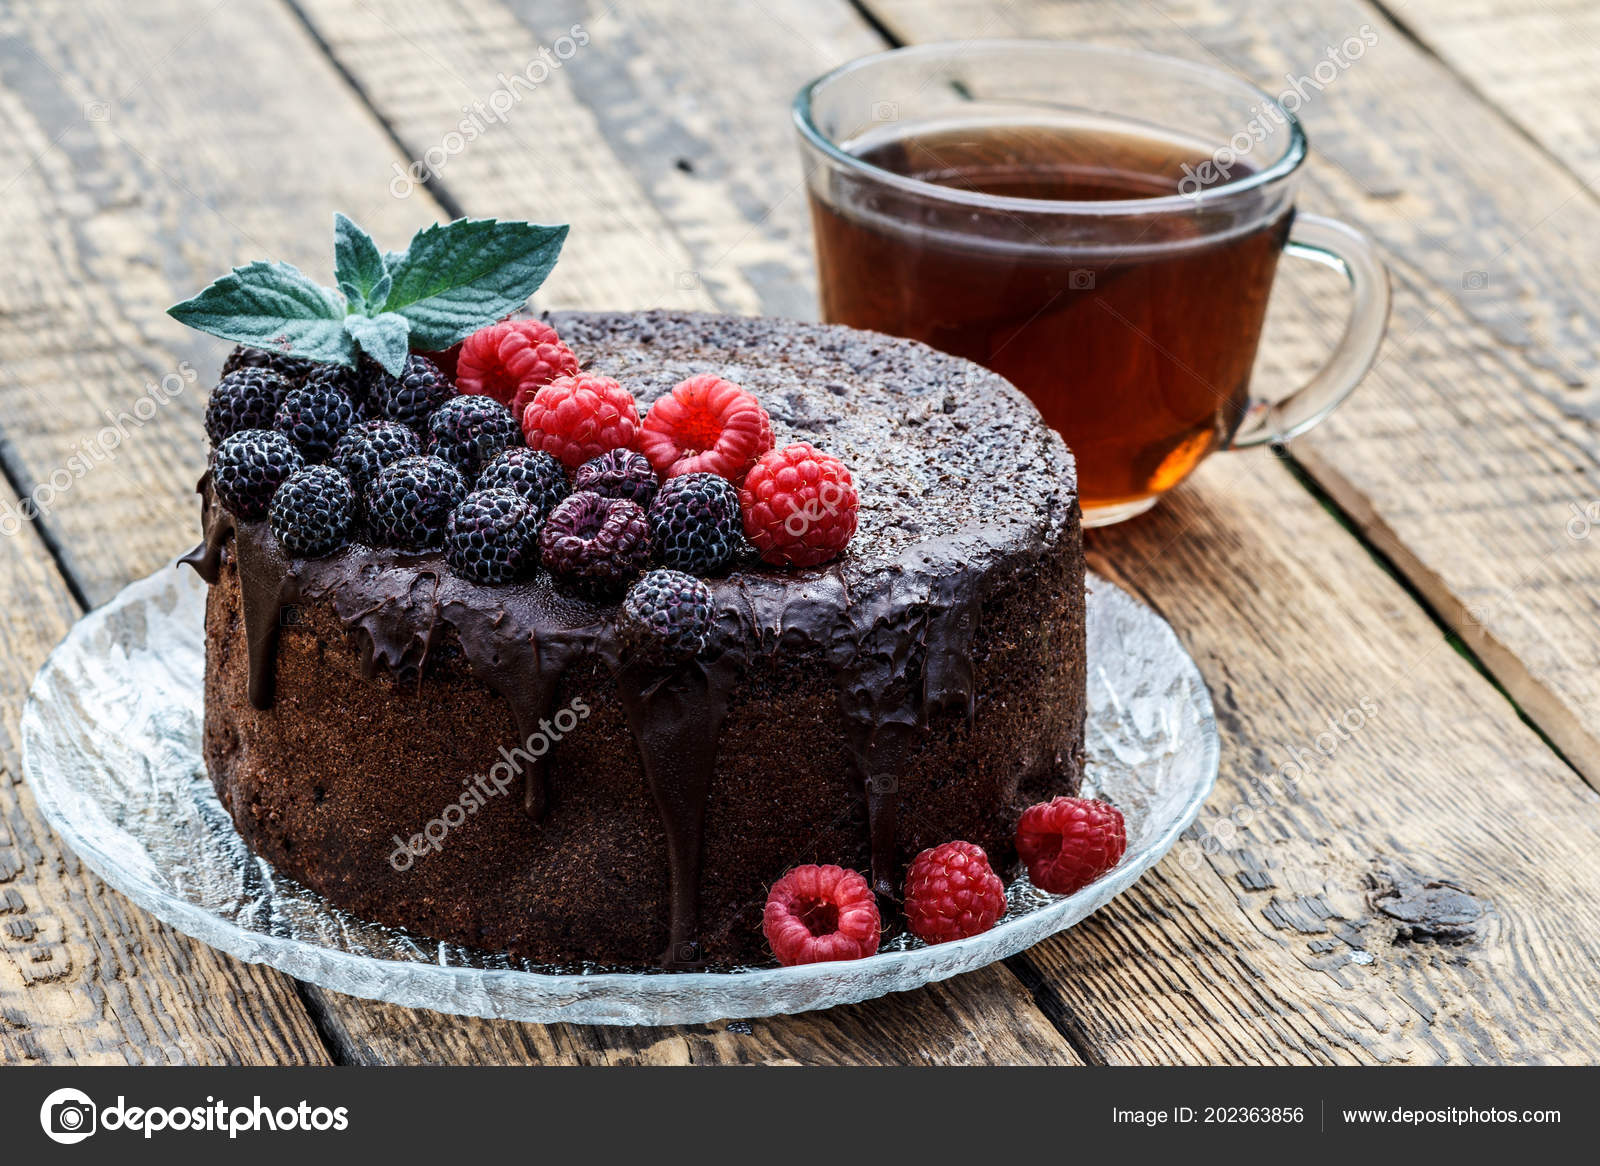 Homemade Chocolate Cake Decorated Mint Leaves Black Red Raspberries